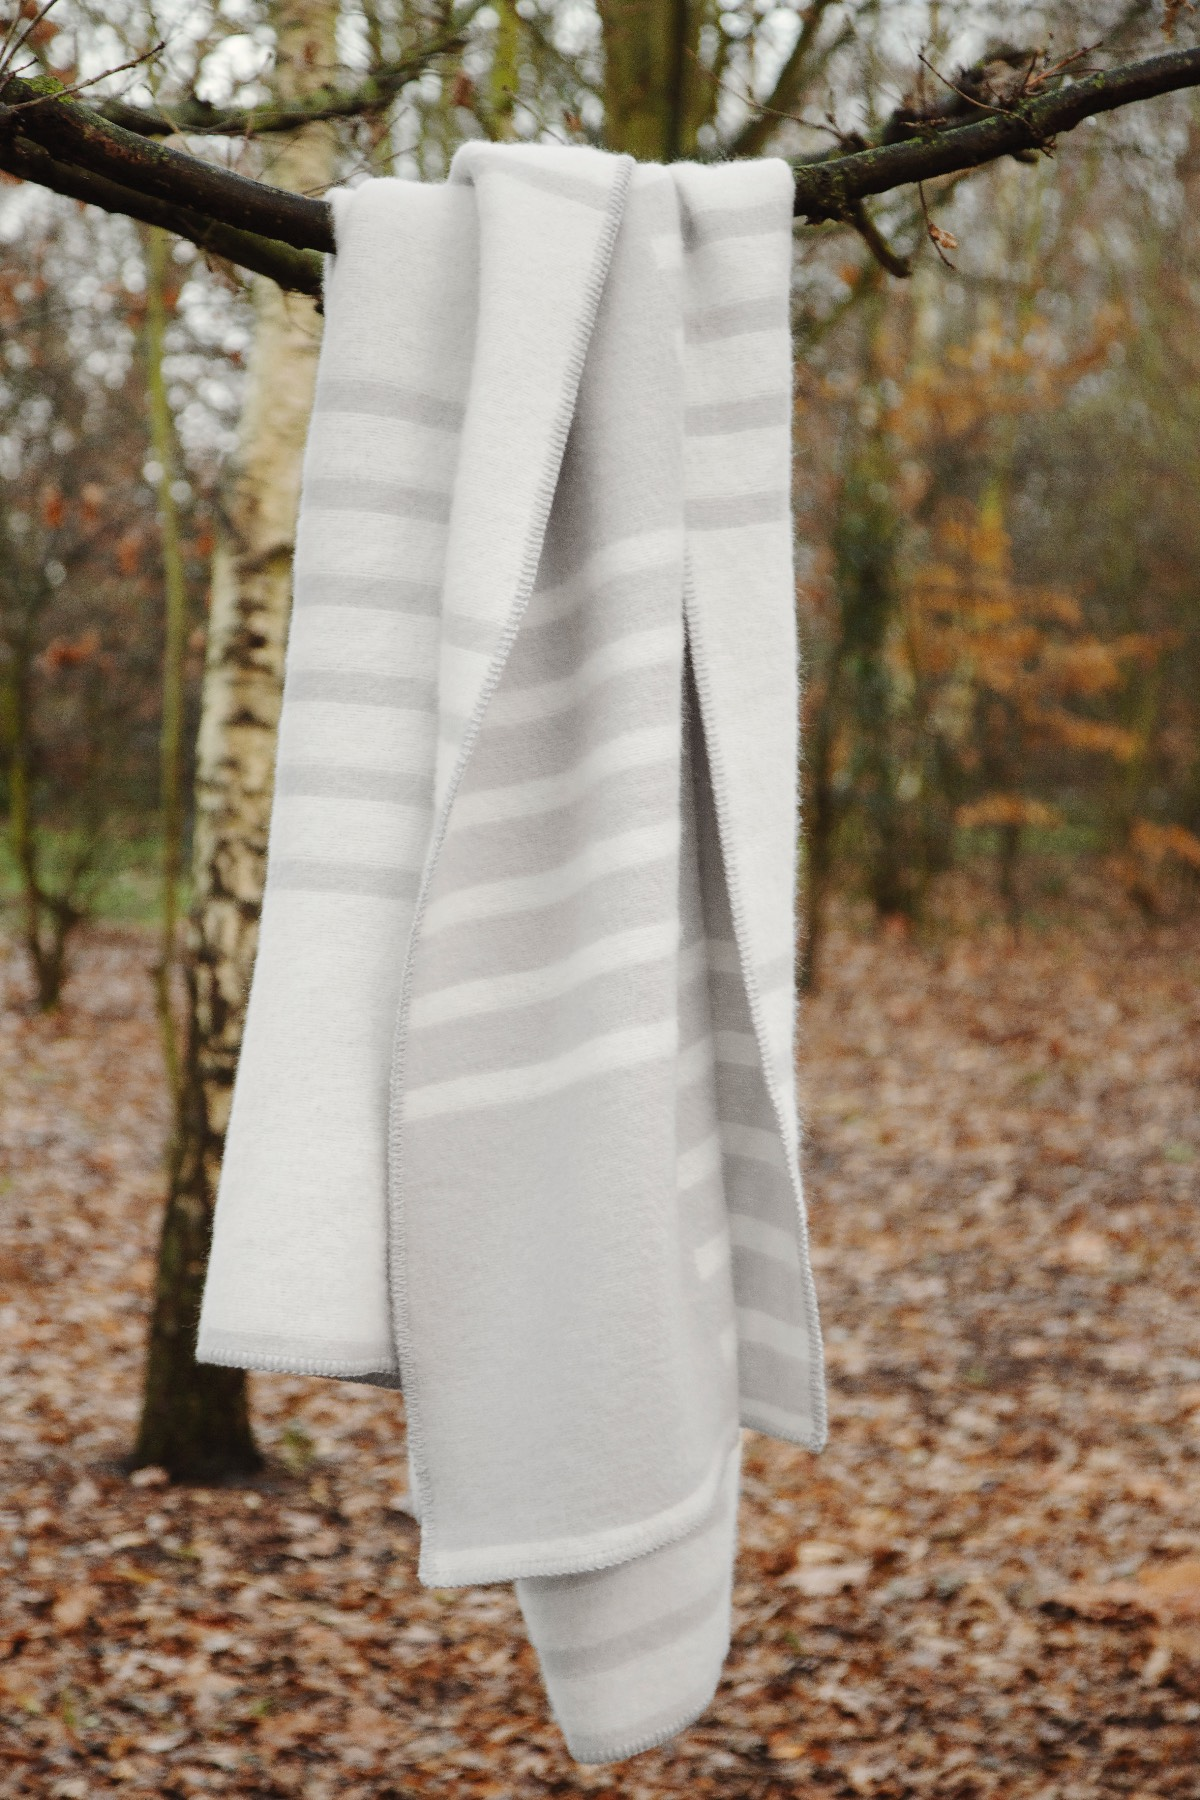 A Classic wool blanket in Cream and Gray hanging on a branch in a tree.